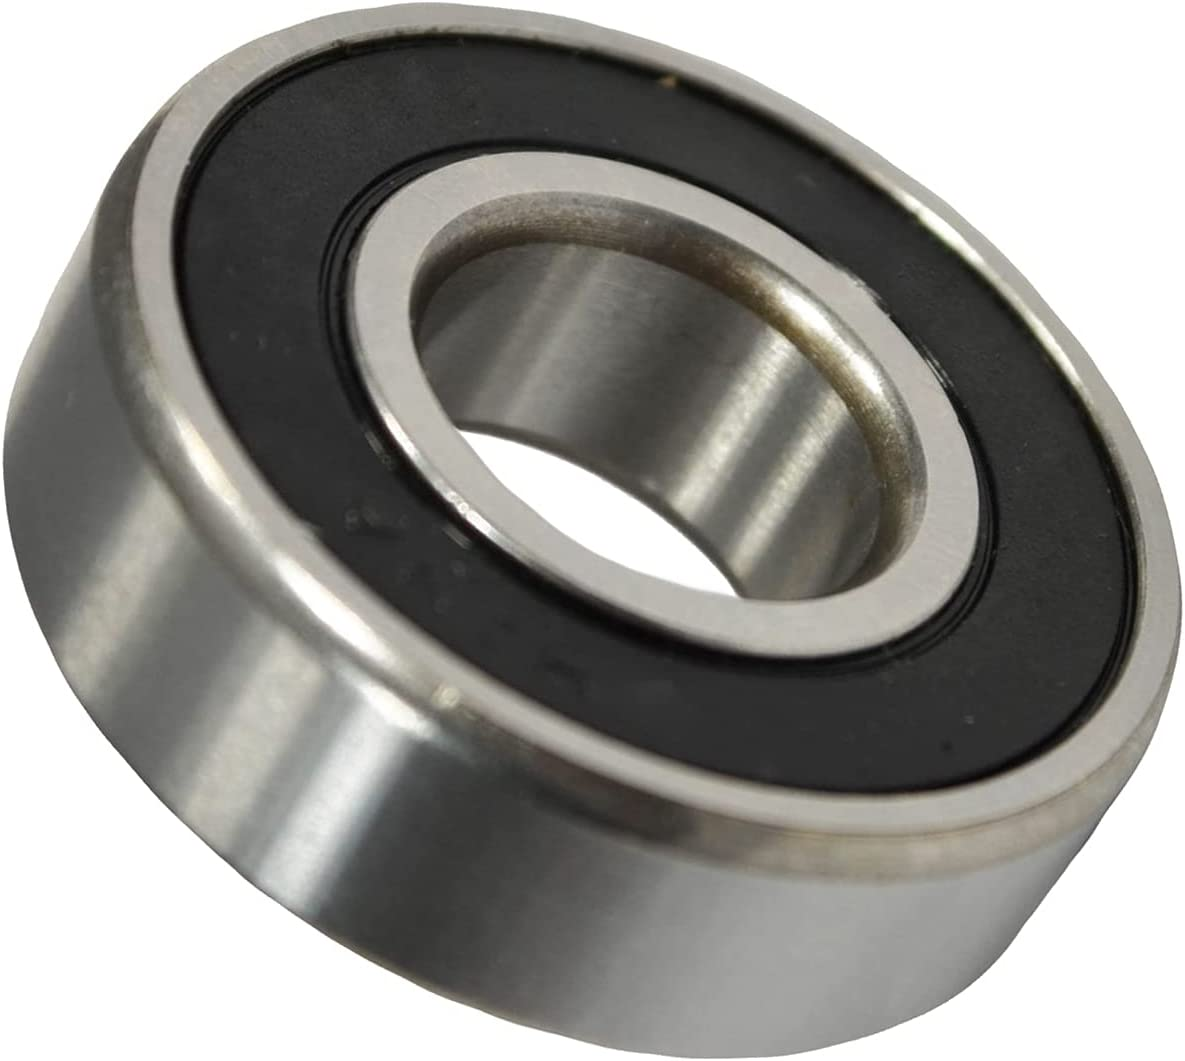 30x62x16mm Premium Ball Bearing with 6206-2RS New arrival New Shipping Free Shipping Rubber Fit Seals C